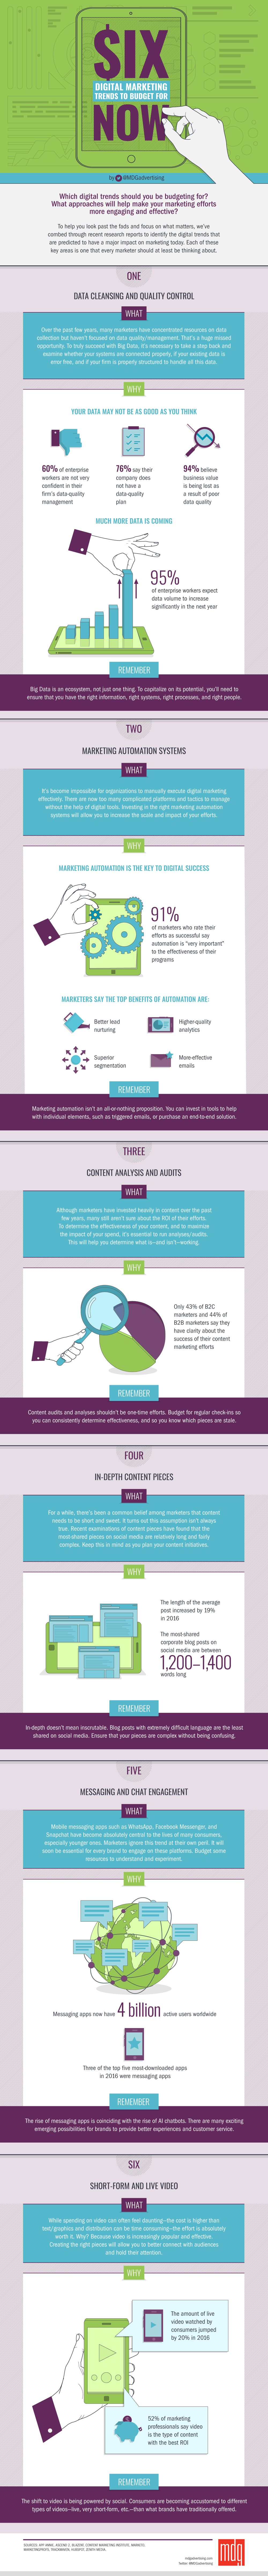 Infographic: Budgeting For Digital Marketing Trends